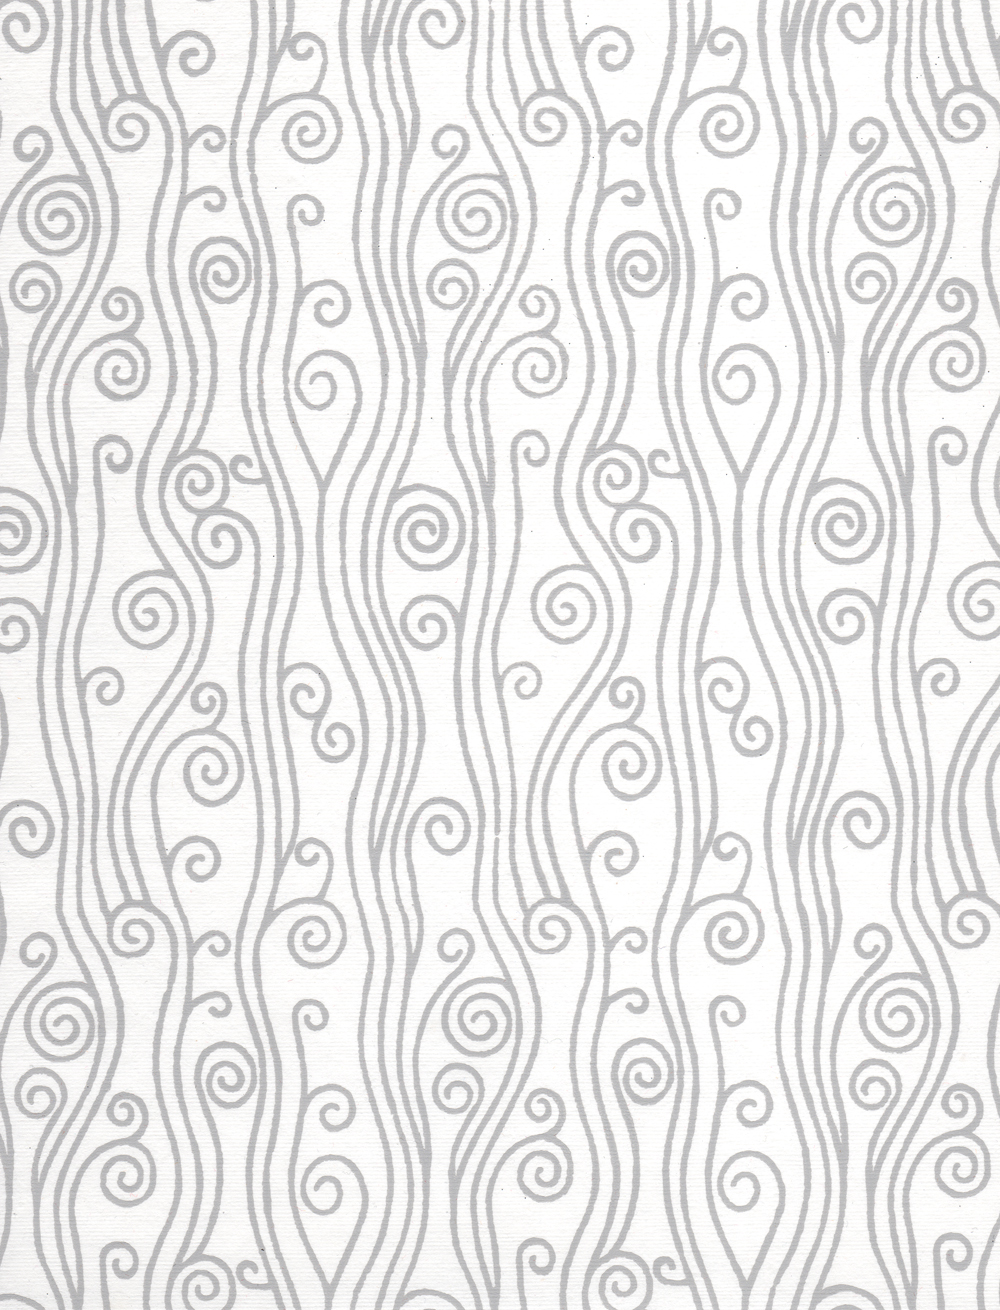 Swirly Pattern On White Paper, Antique, Scan, White, Vintage, HQ Photo